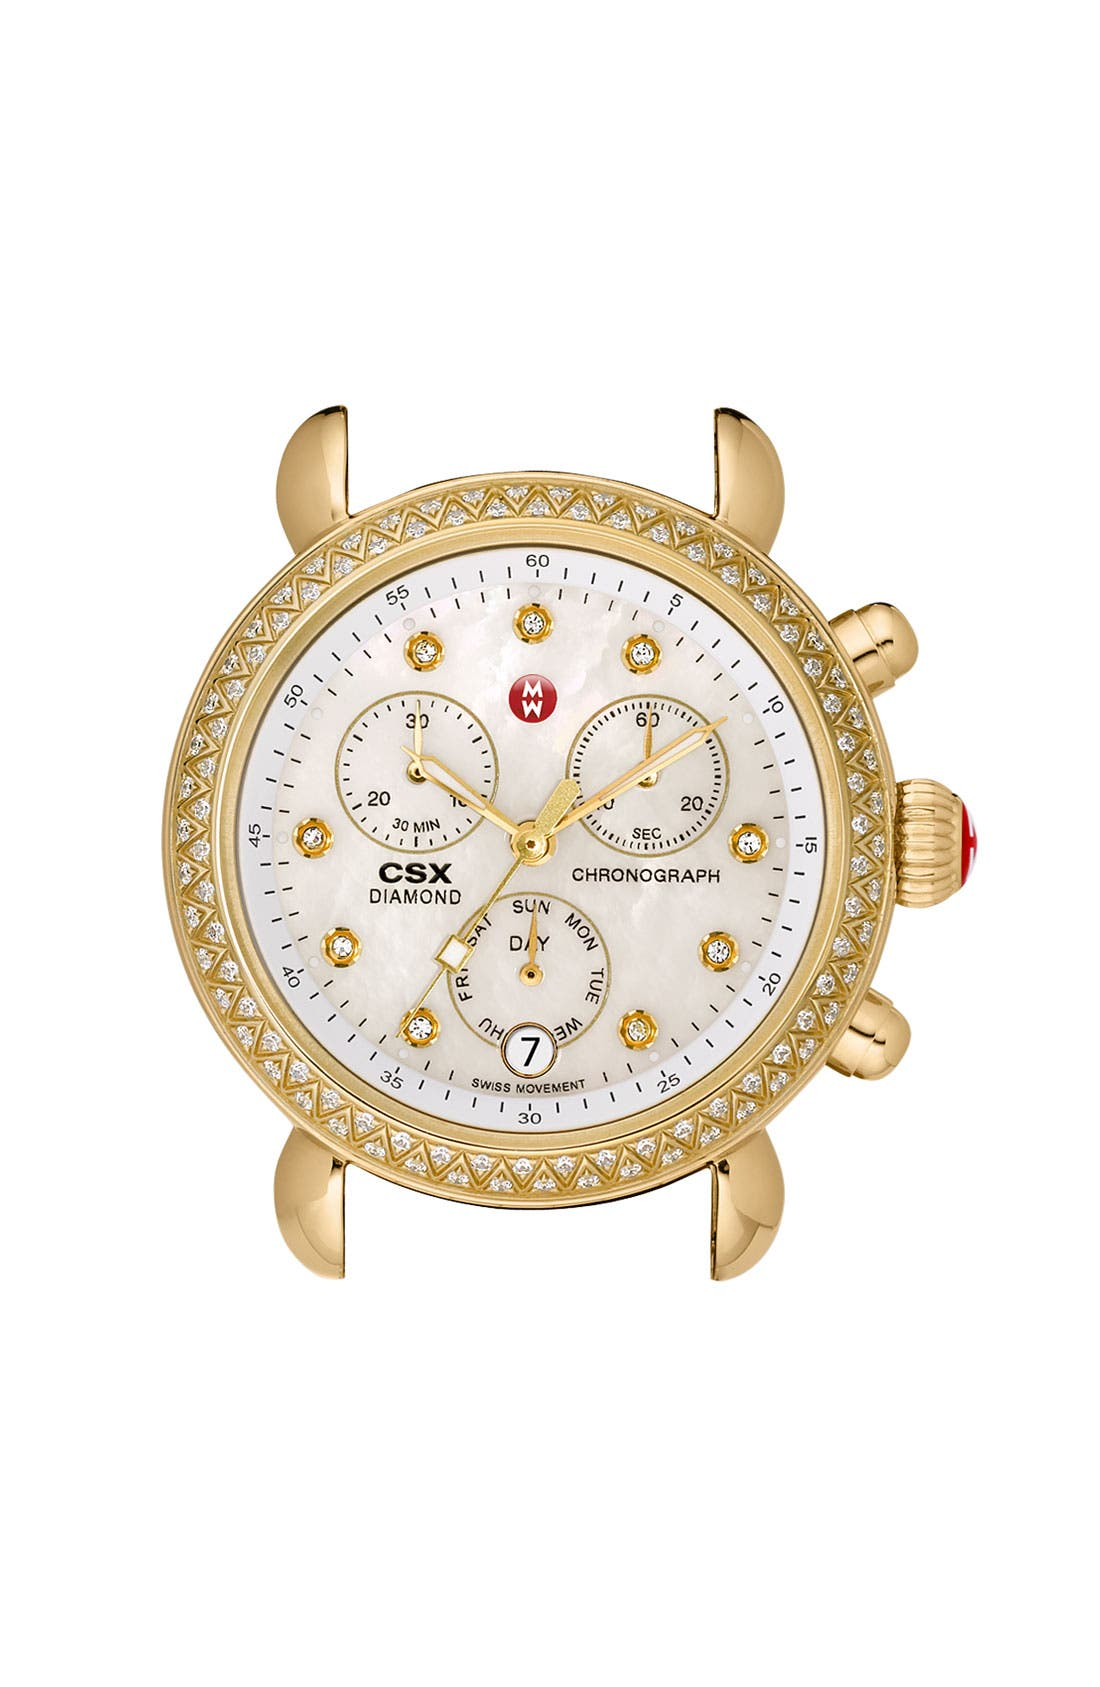 Main Image - MICHELE 'CSX-36 Diamond' Diamond Dial Gold Plated Watch Case, 36mm